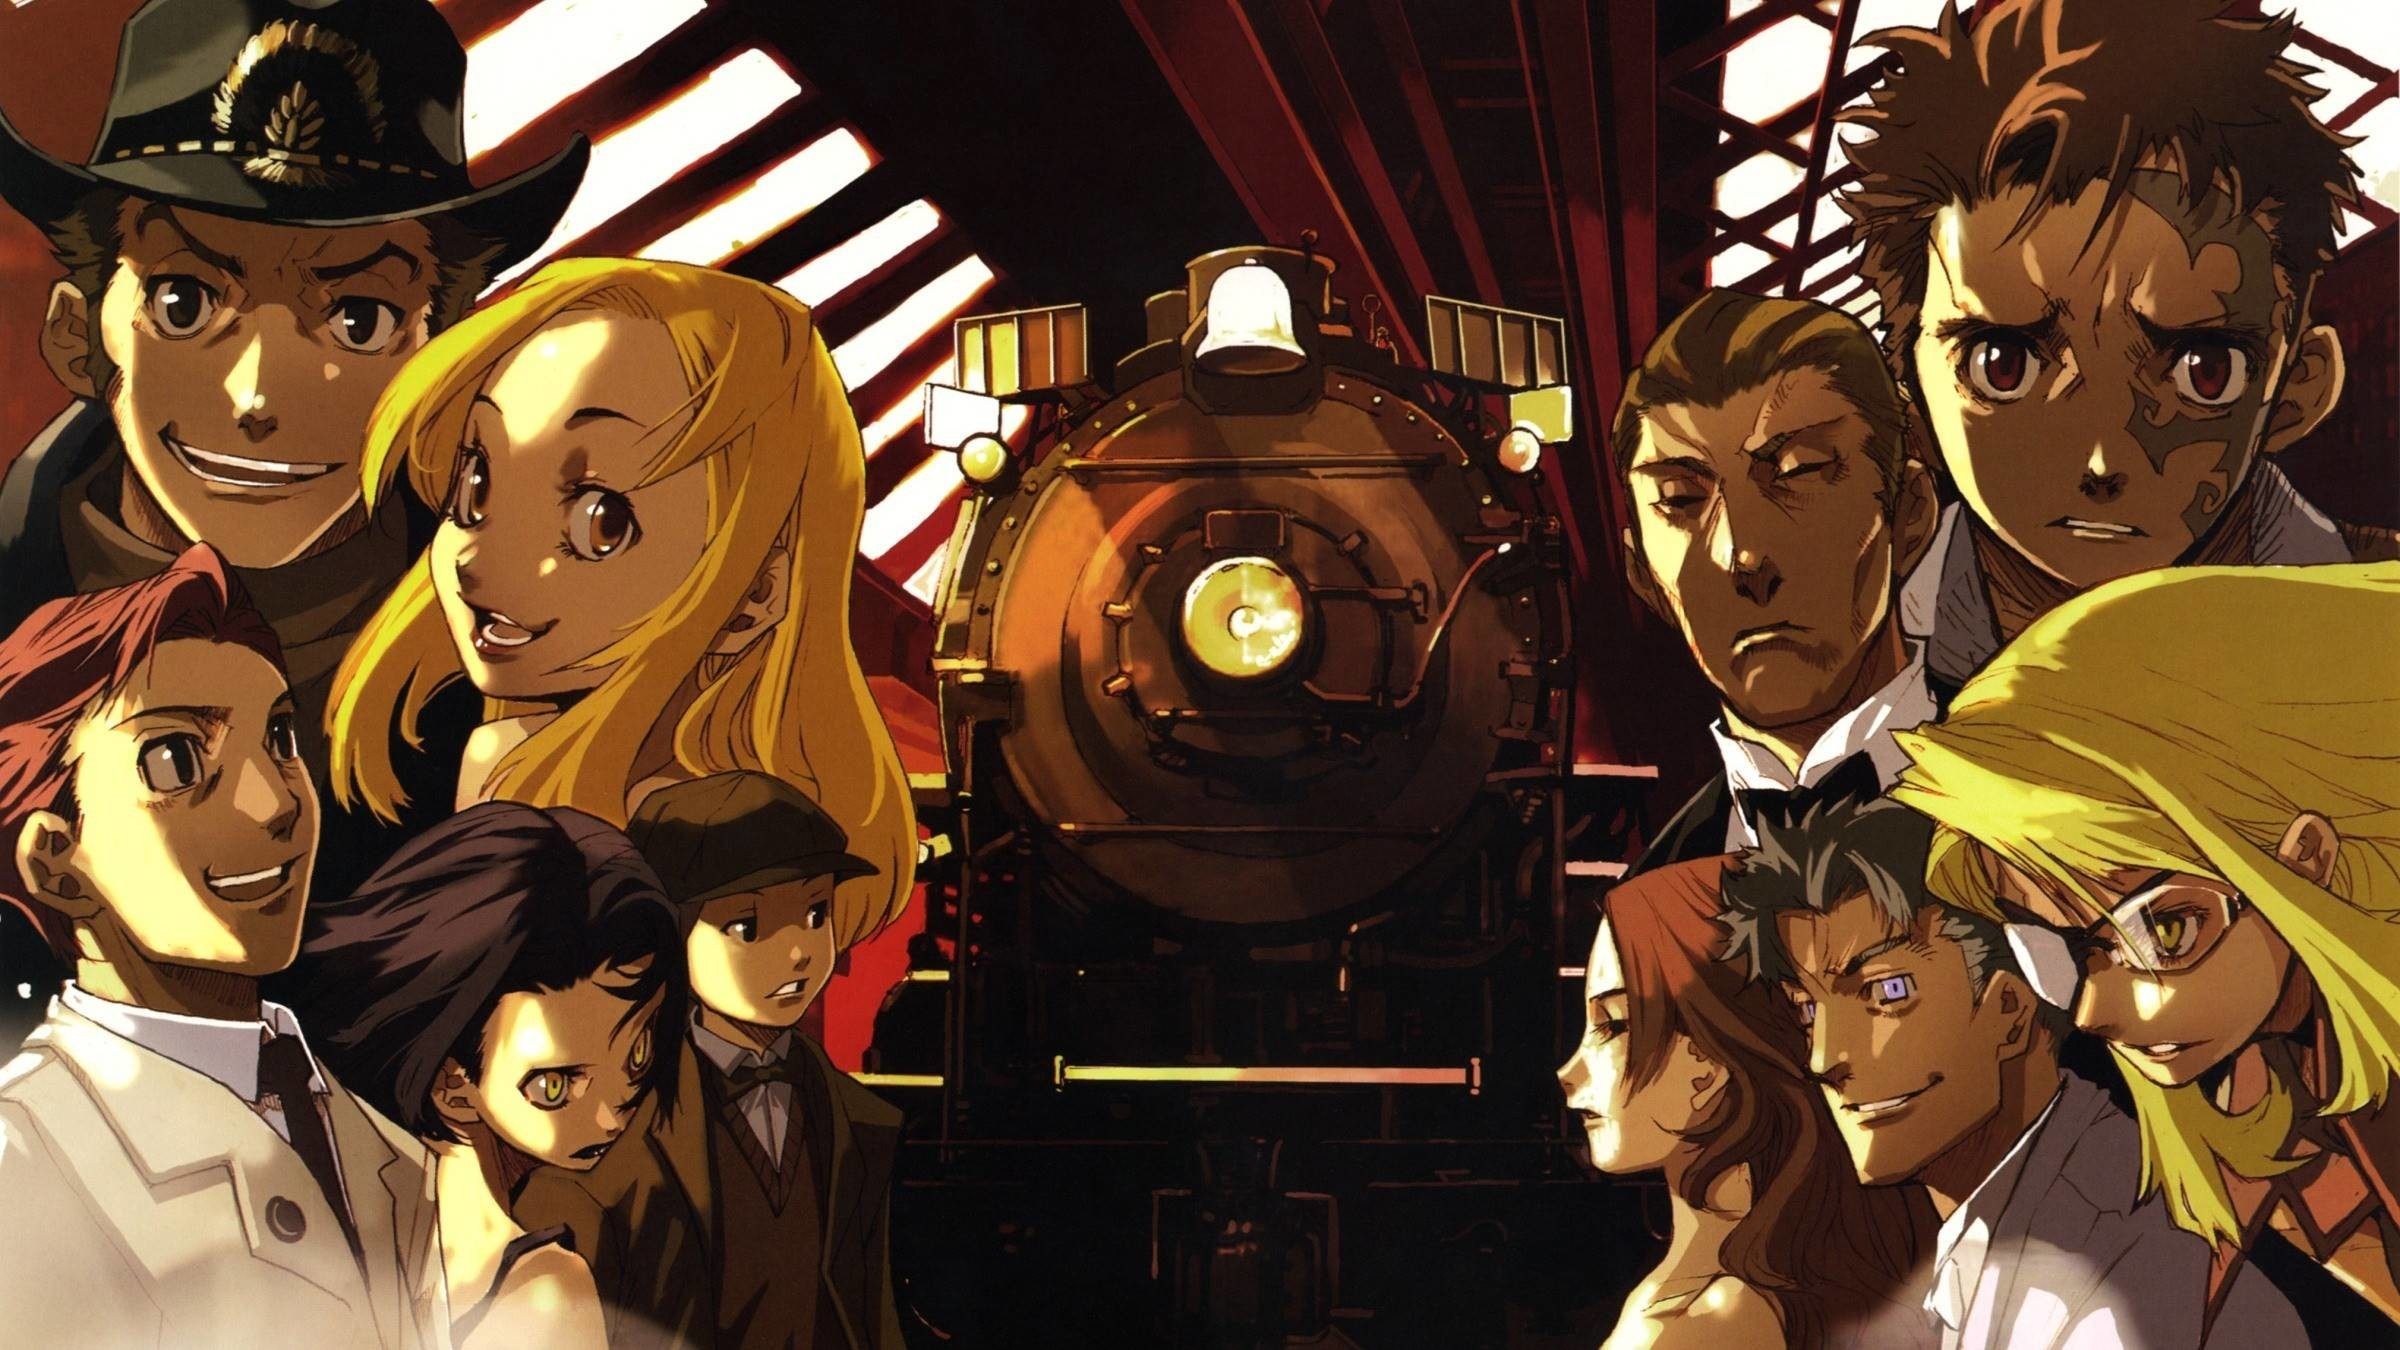 2400x1350 Baccano! Anime Wallpapers